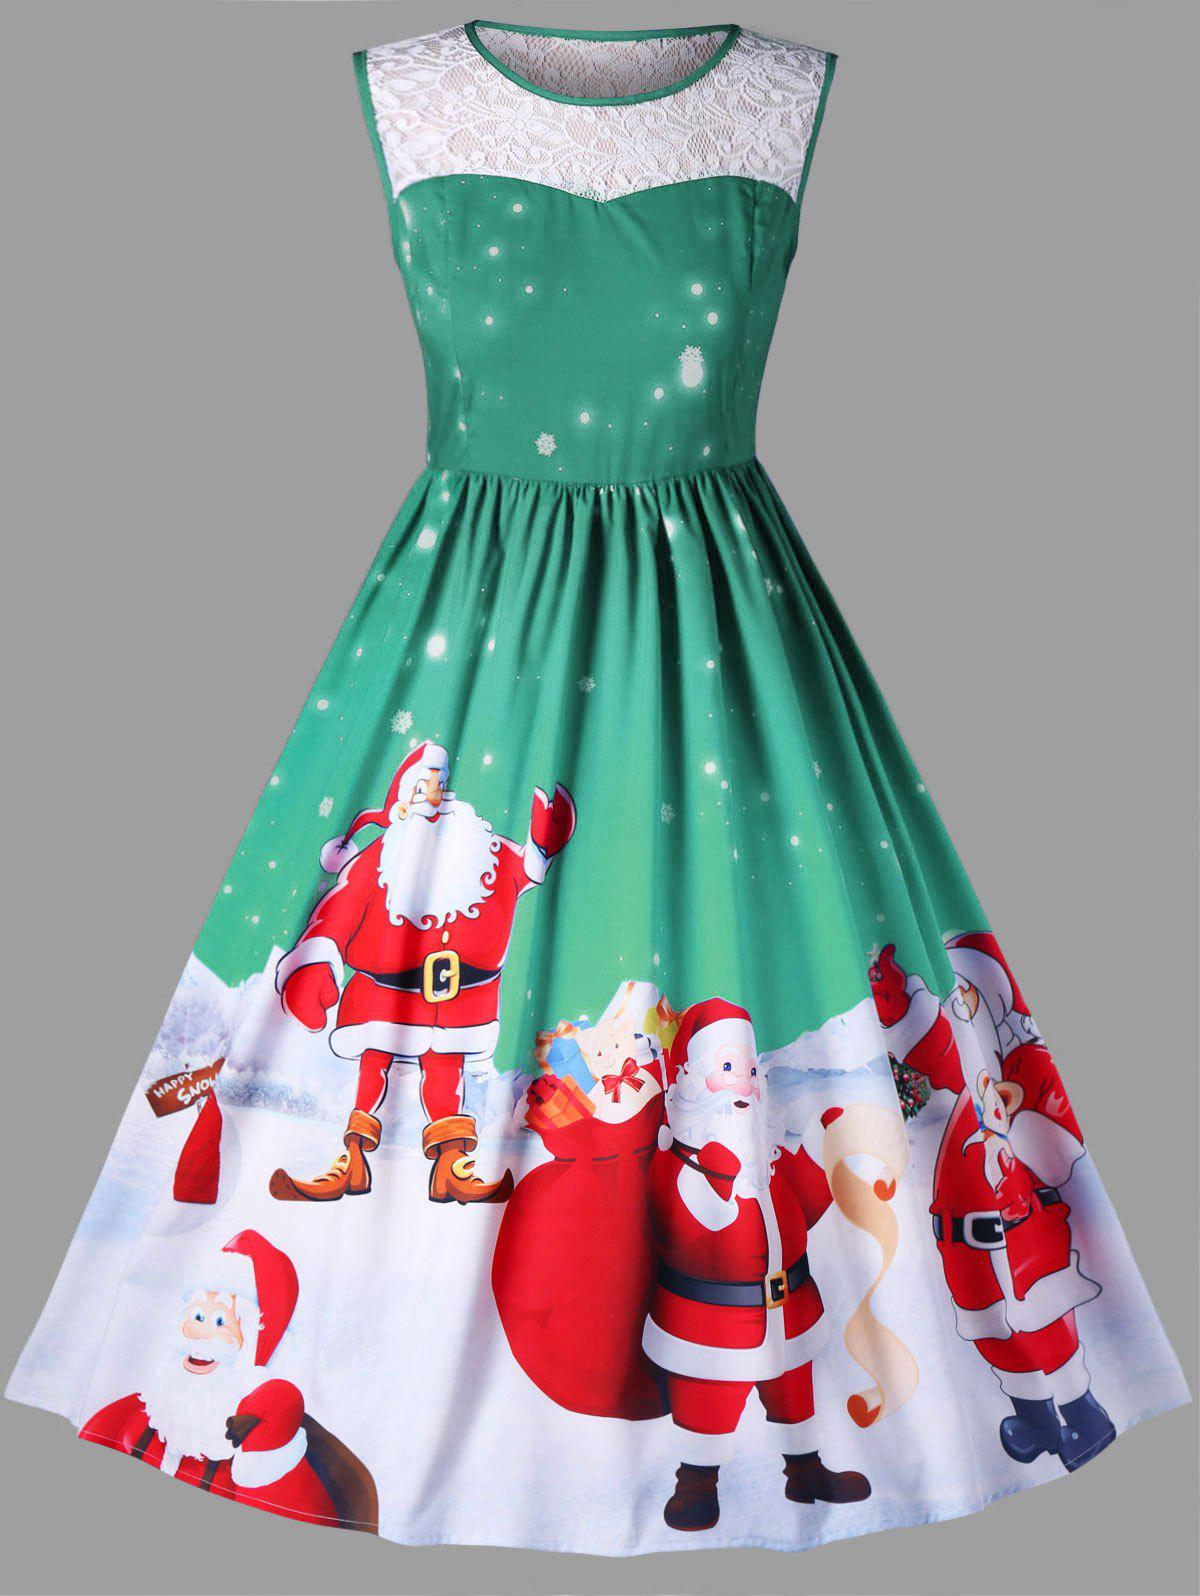 Christmas Plus Size Santa Claus Sleeveless Swing DressWOMEN<br><br>Size: 5XL; Color: GREEN; Style: Vintage; Material: Polyester; Silhouette: A-Line; Dresses Length: Knee-Length; Neckline: Round Collar; Sleeve Length: Sleeveless; Embellishment: Lace; Pattern Type: Animal,Character; With Belt: No; Season: Fall,Spring; Weight: 0.4200kg; Package Contents: 1 x Dress;